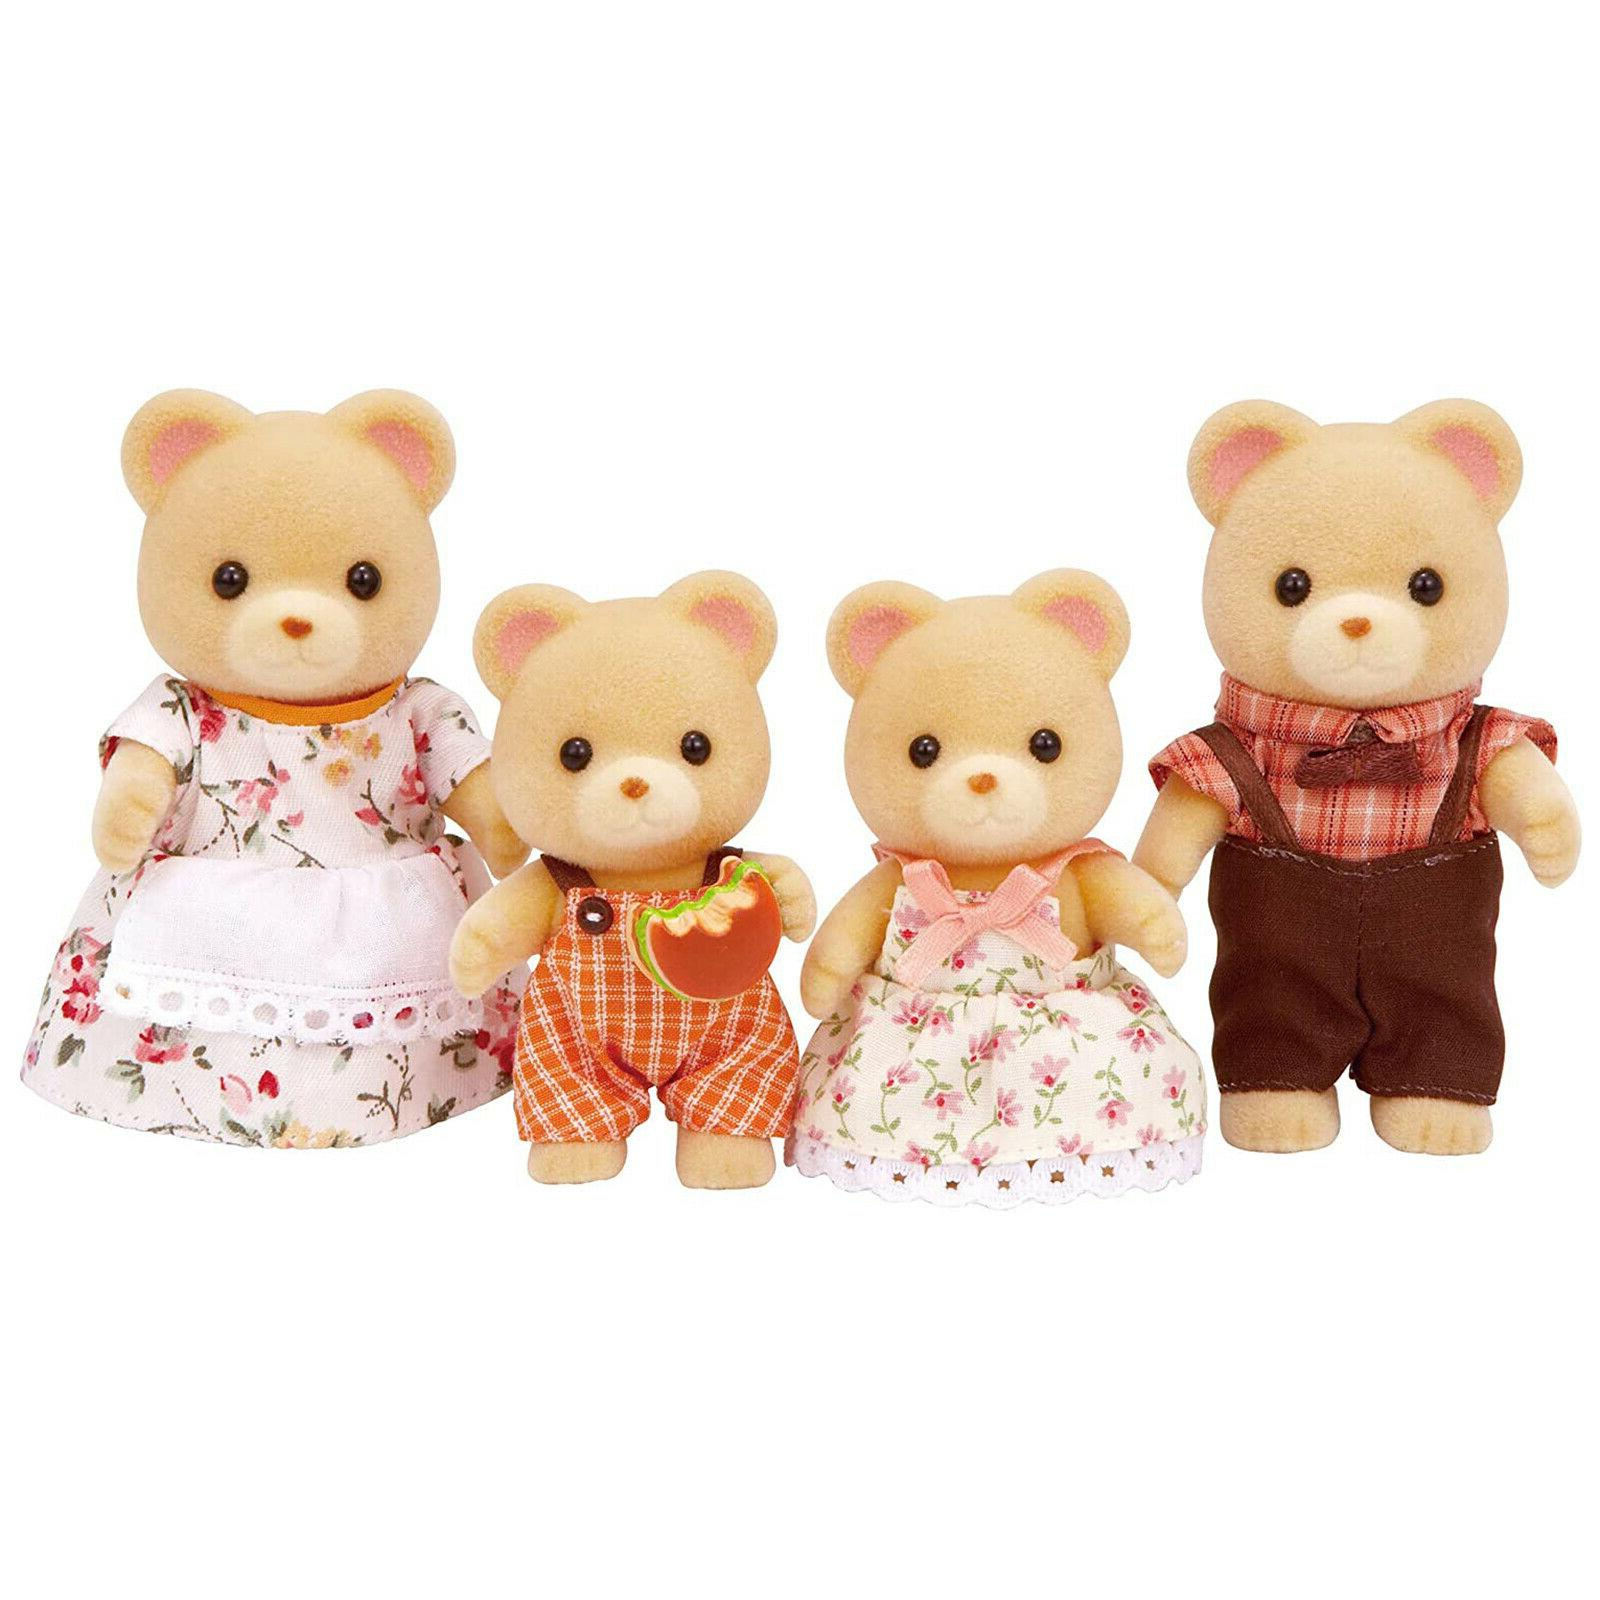 Calico Critters Cuddle Family Set CC1509 IN